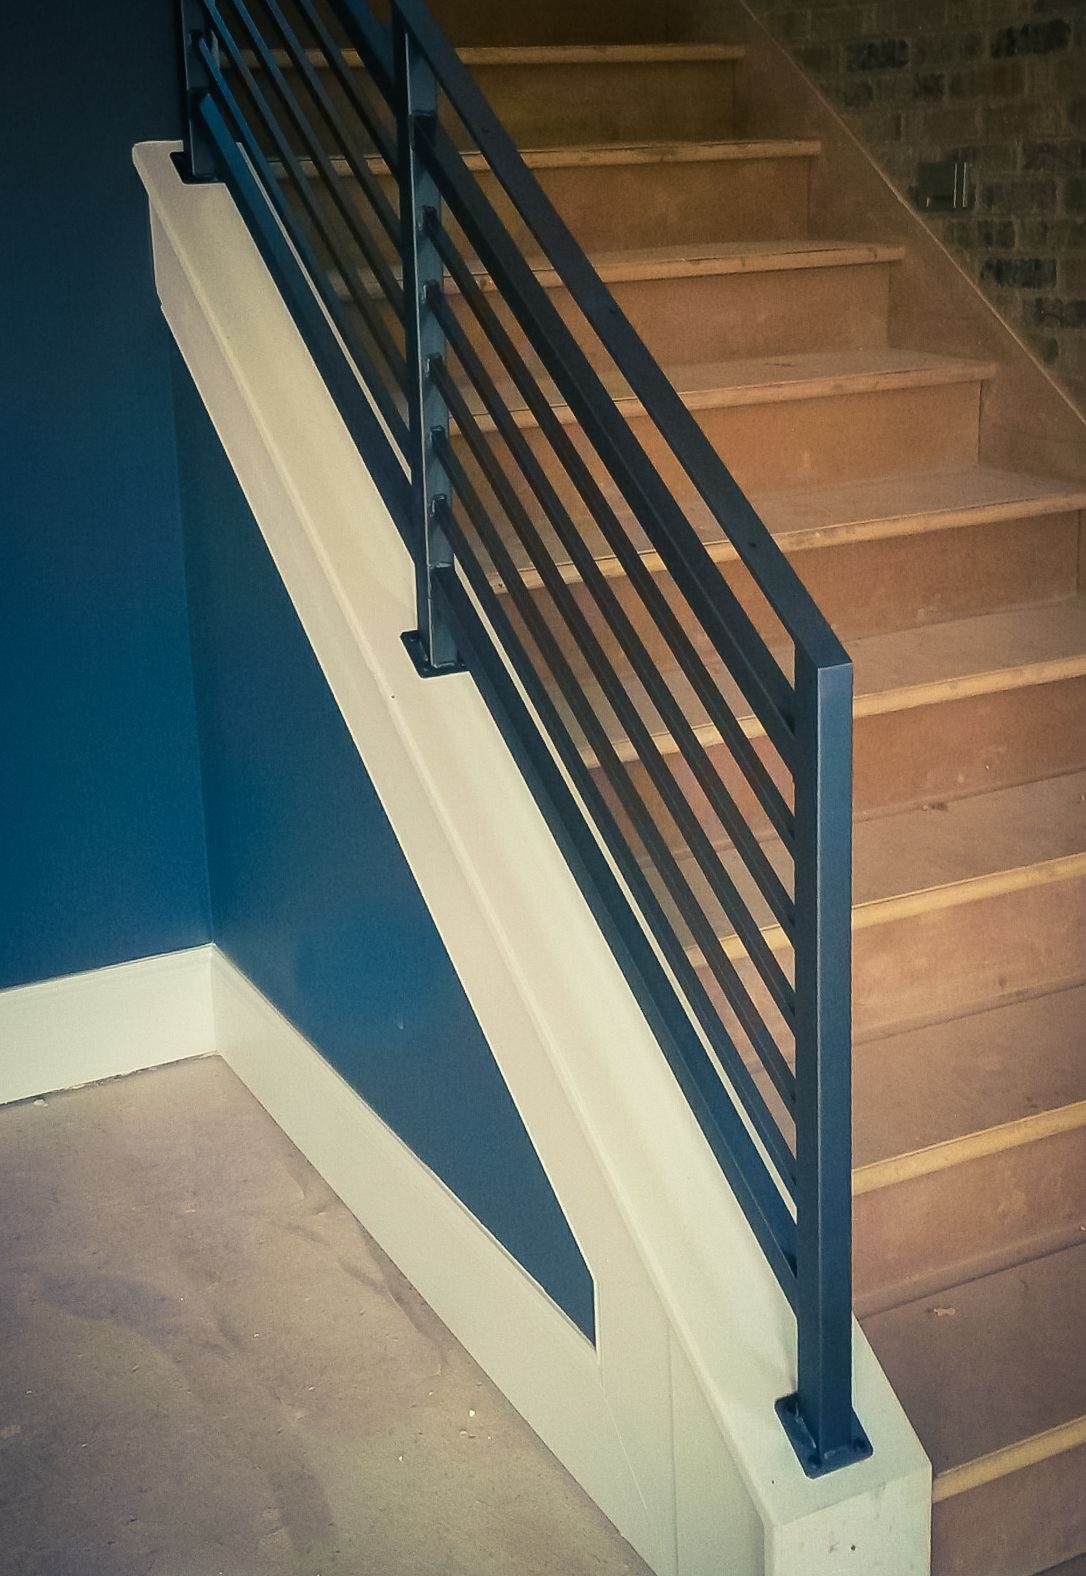 Wrought Iron Railing With Clean Horizontal Lines With Images